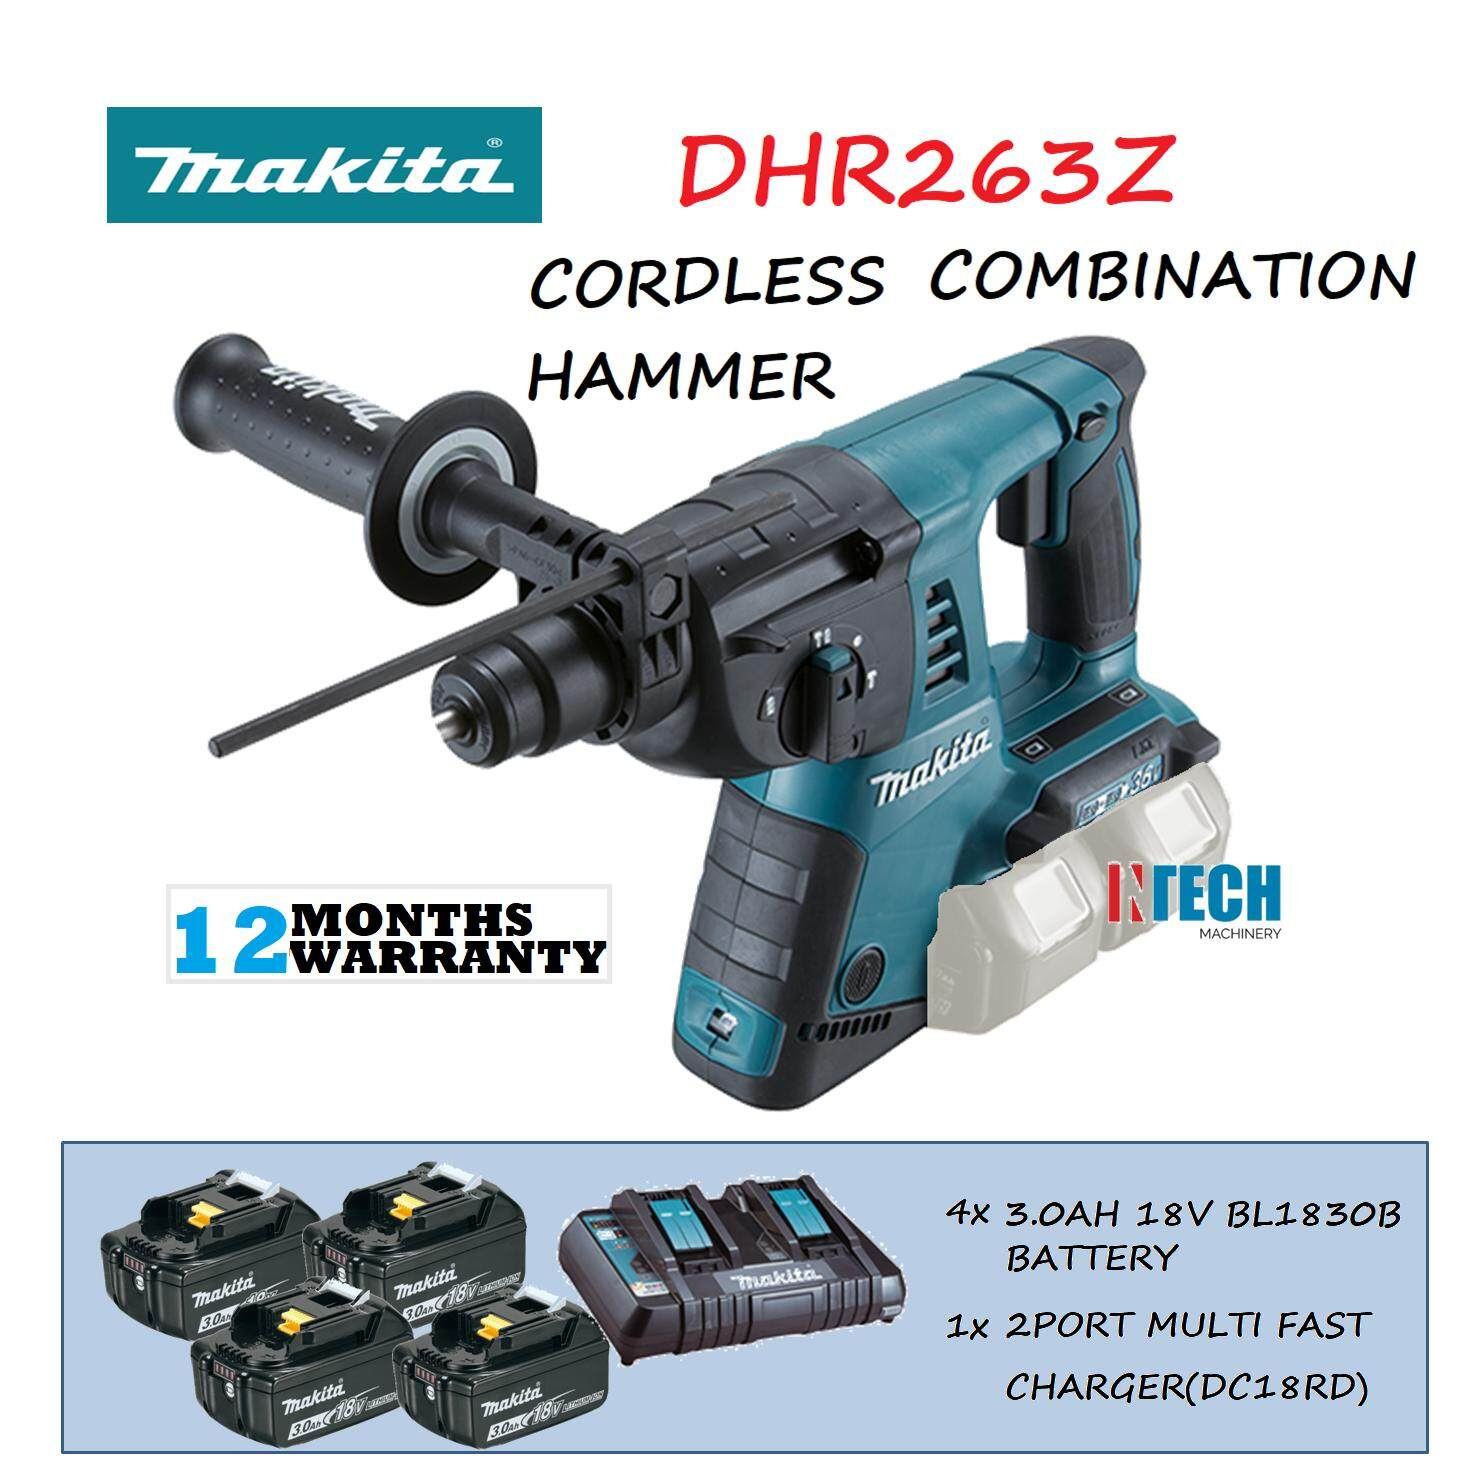 MAKITA DHR263Z CORDLESS COMBINATION HAMMER C/W 4x3.0AH BATTERY(BL1830B)+1x 2PORT MULTI FAST CHARGER(DC18RD)